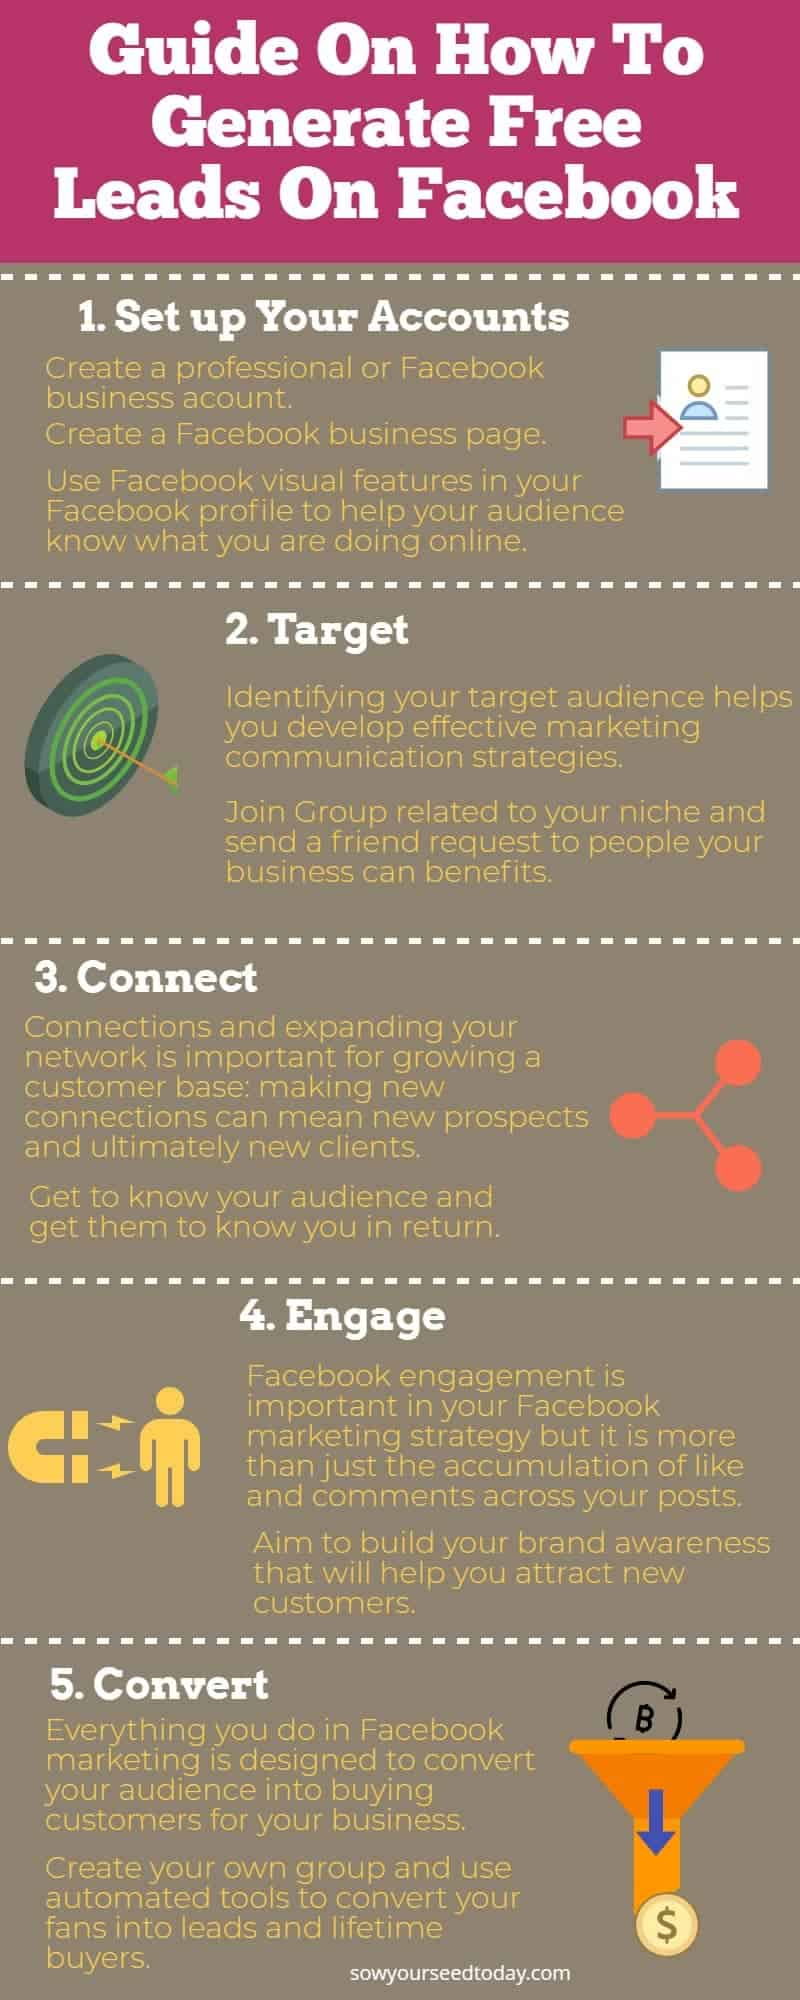 how to generate leads on Facebook for free Infographic